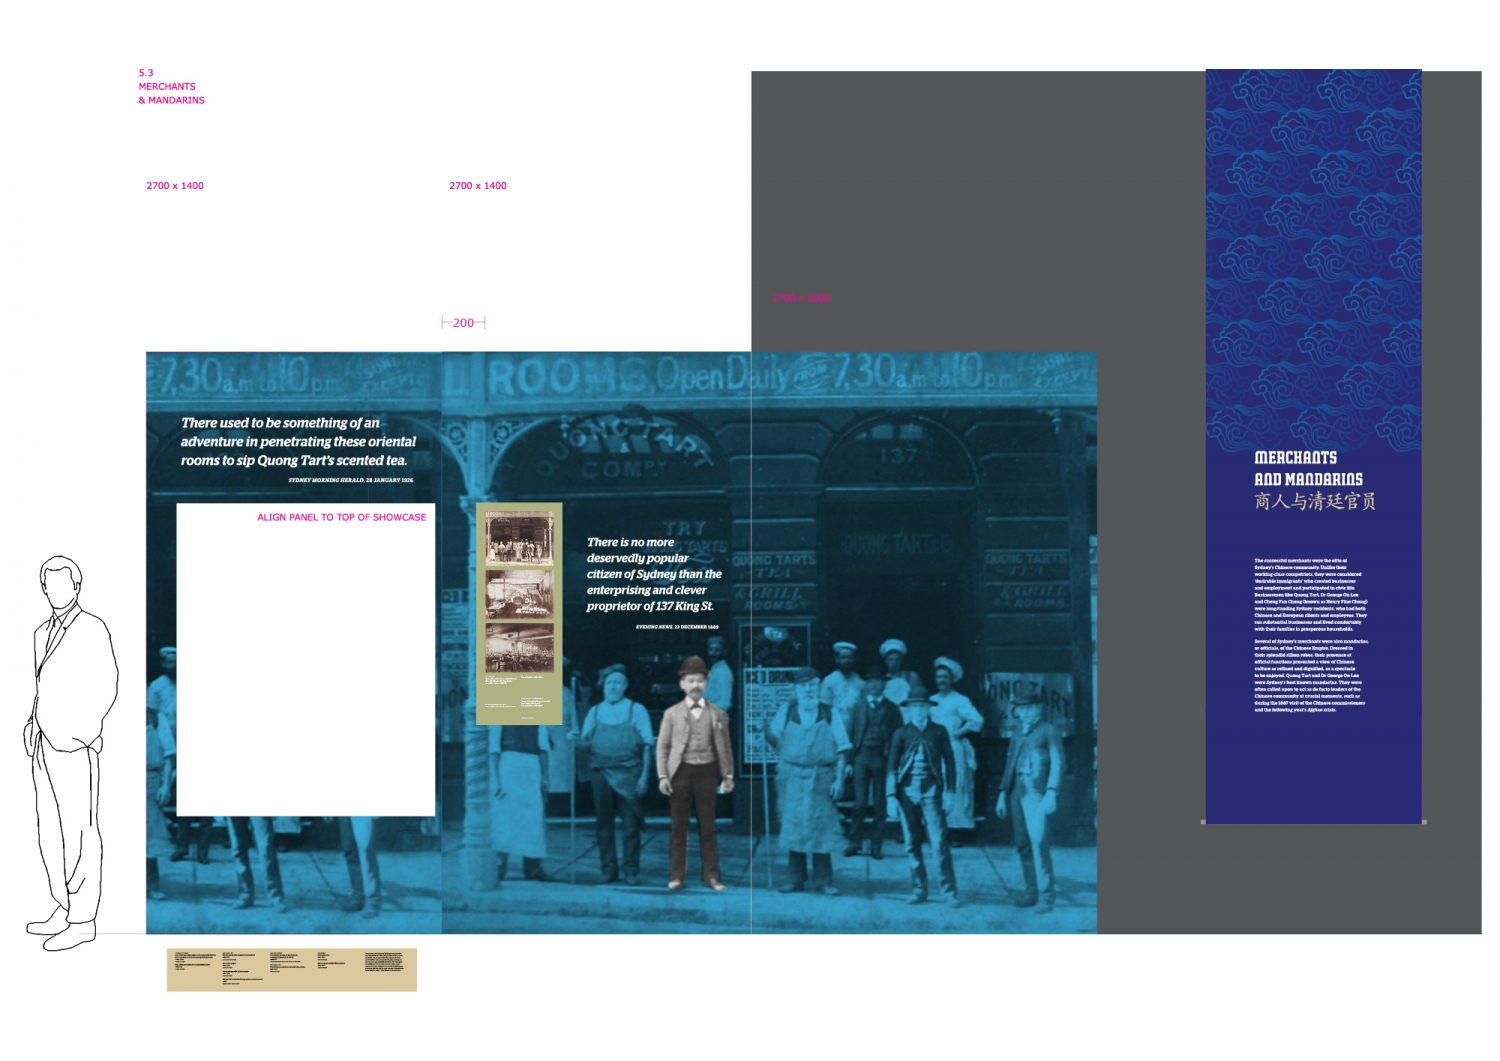 This is a digital rendering of a section of the Celestial City exhibition showing a large, flat historic photograph of people outside a tea house in Sydney with a blue hanging banner adjacent to it